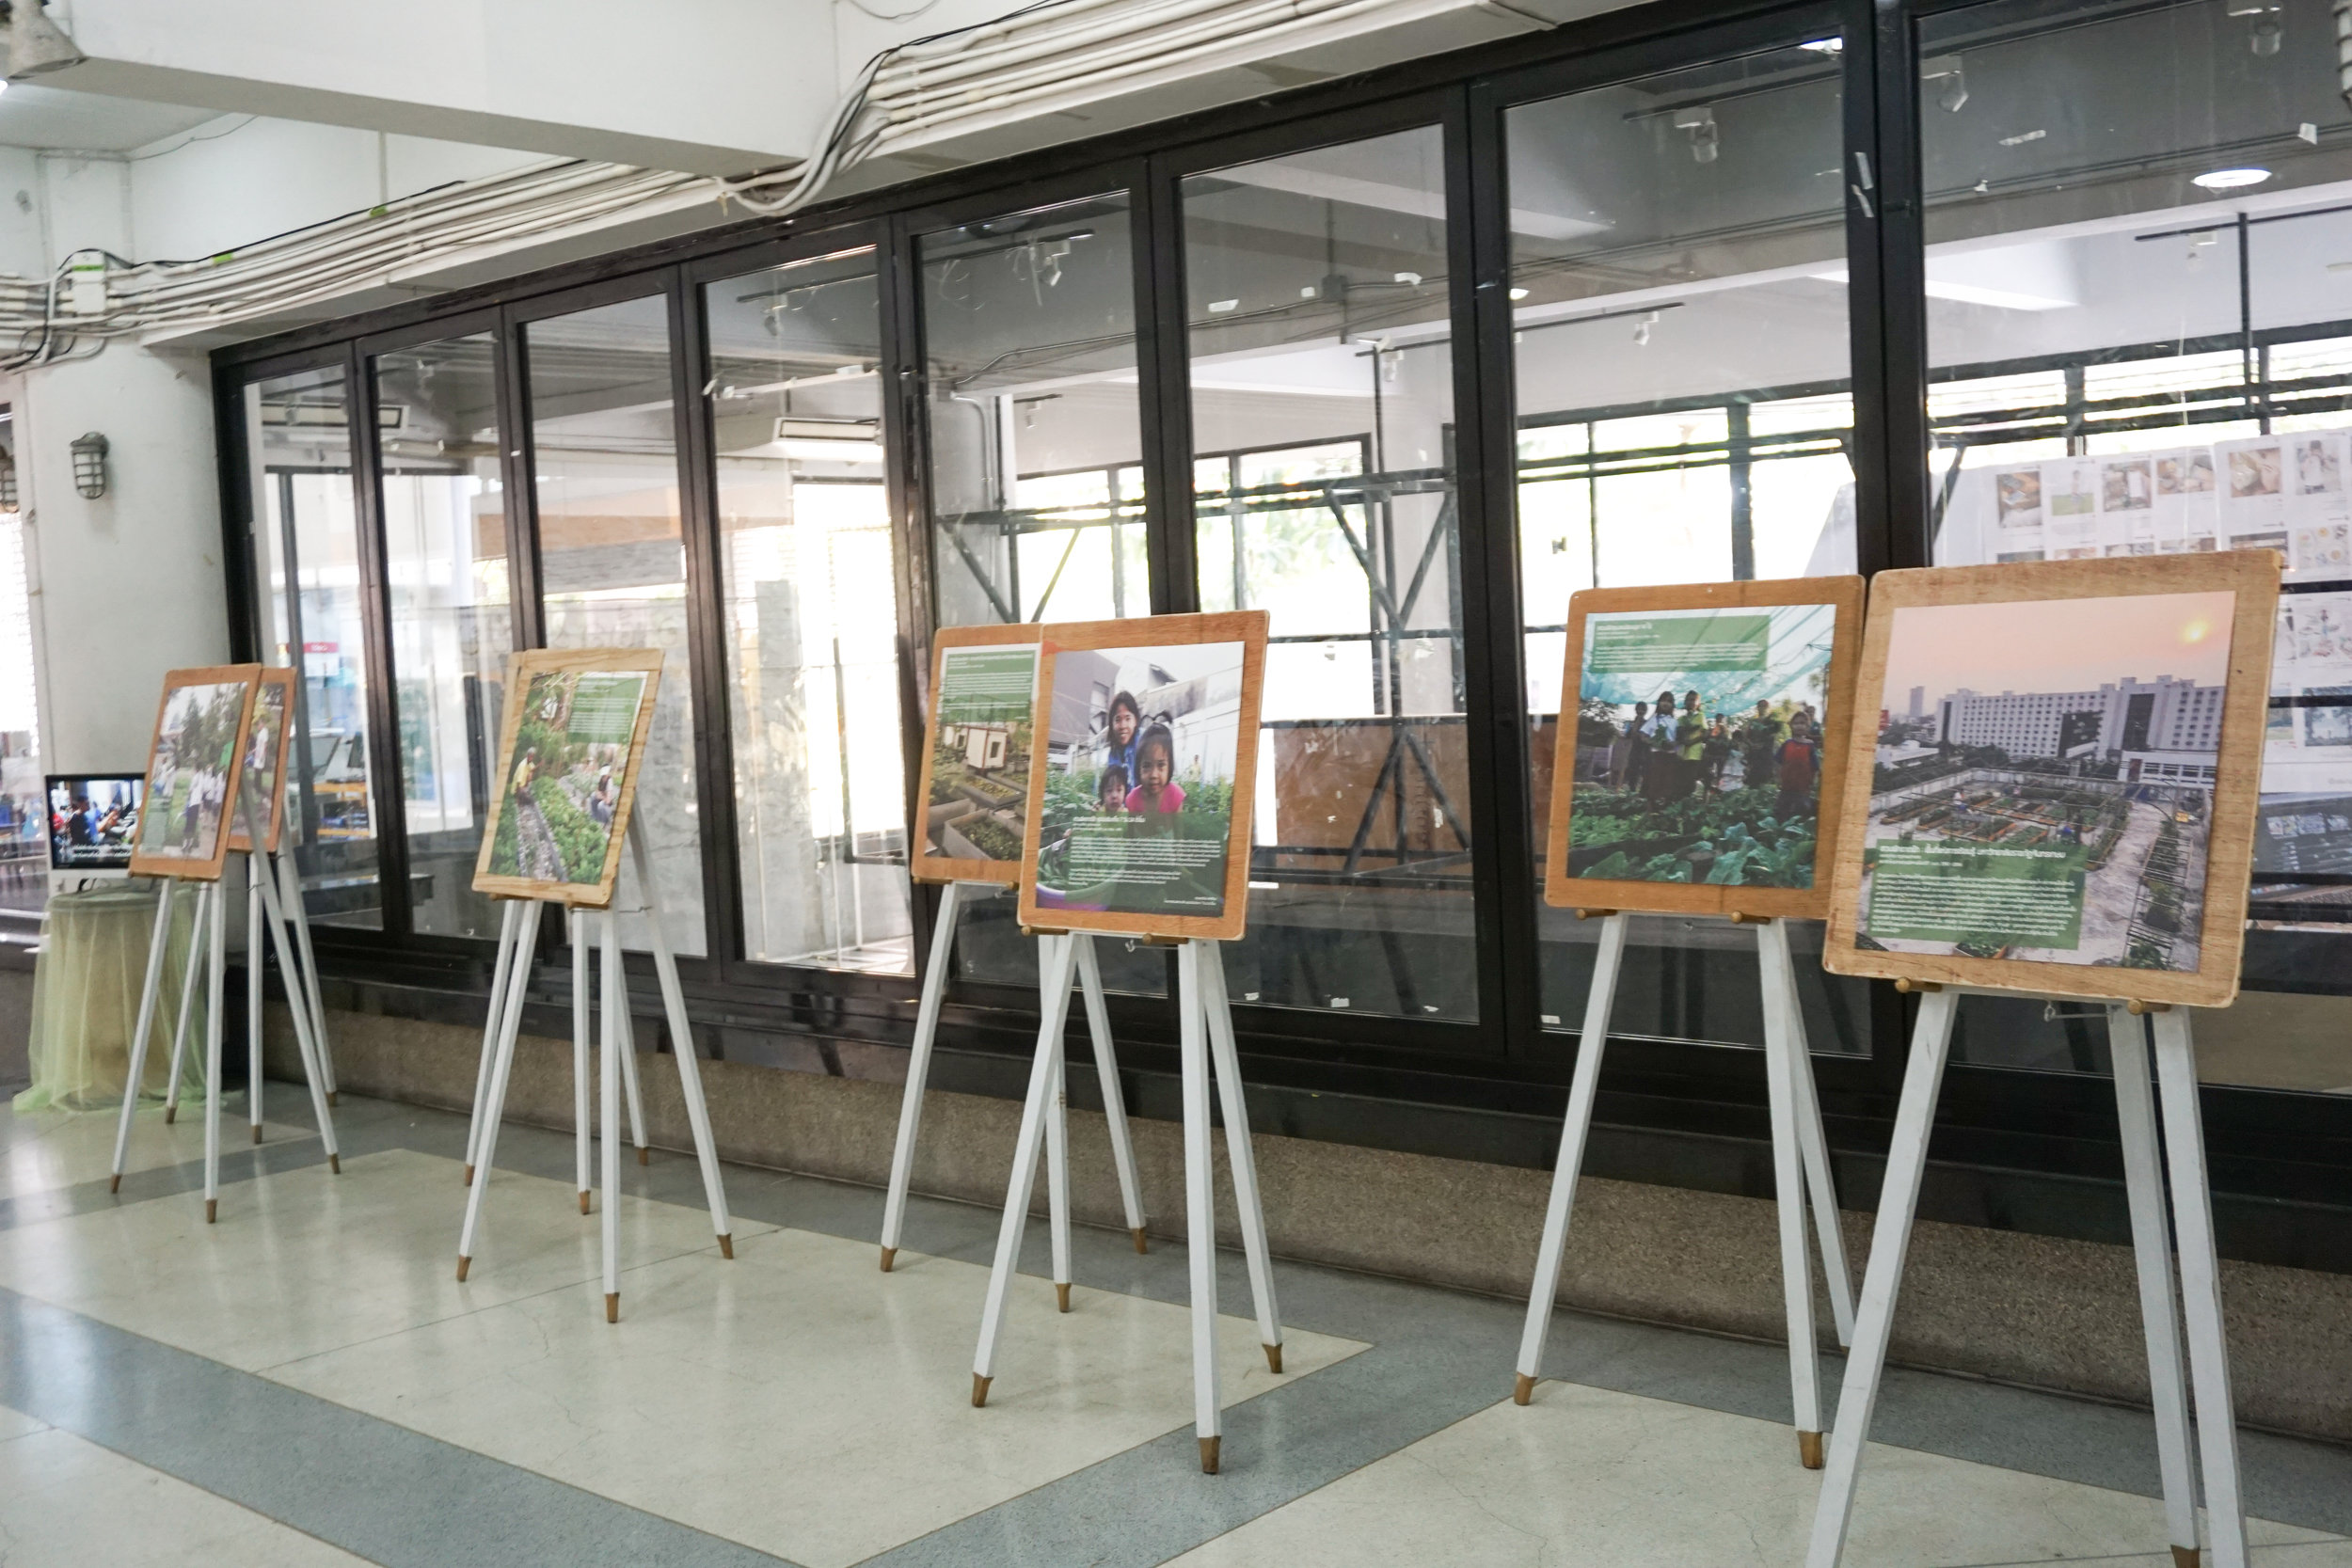 City Farming for a Sustainable City Event: Photo exhibition of urban farming projects around the world